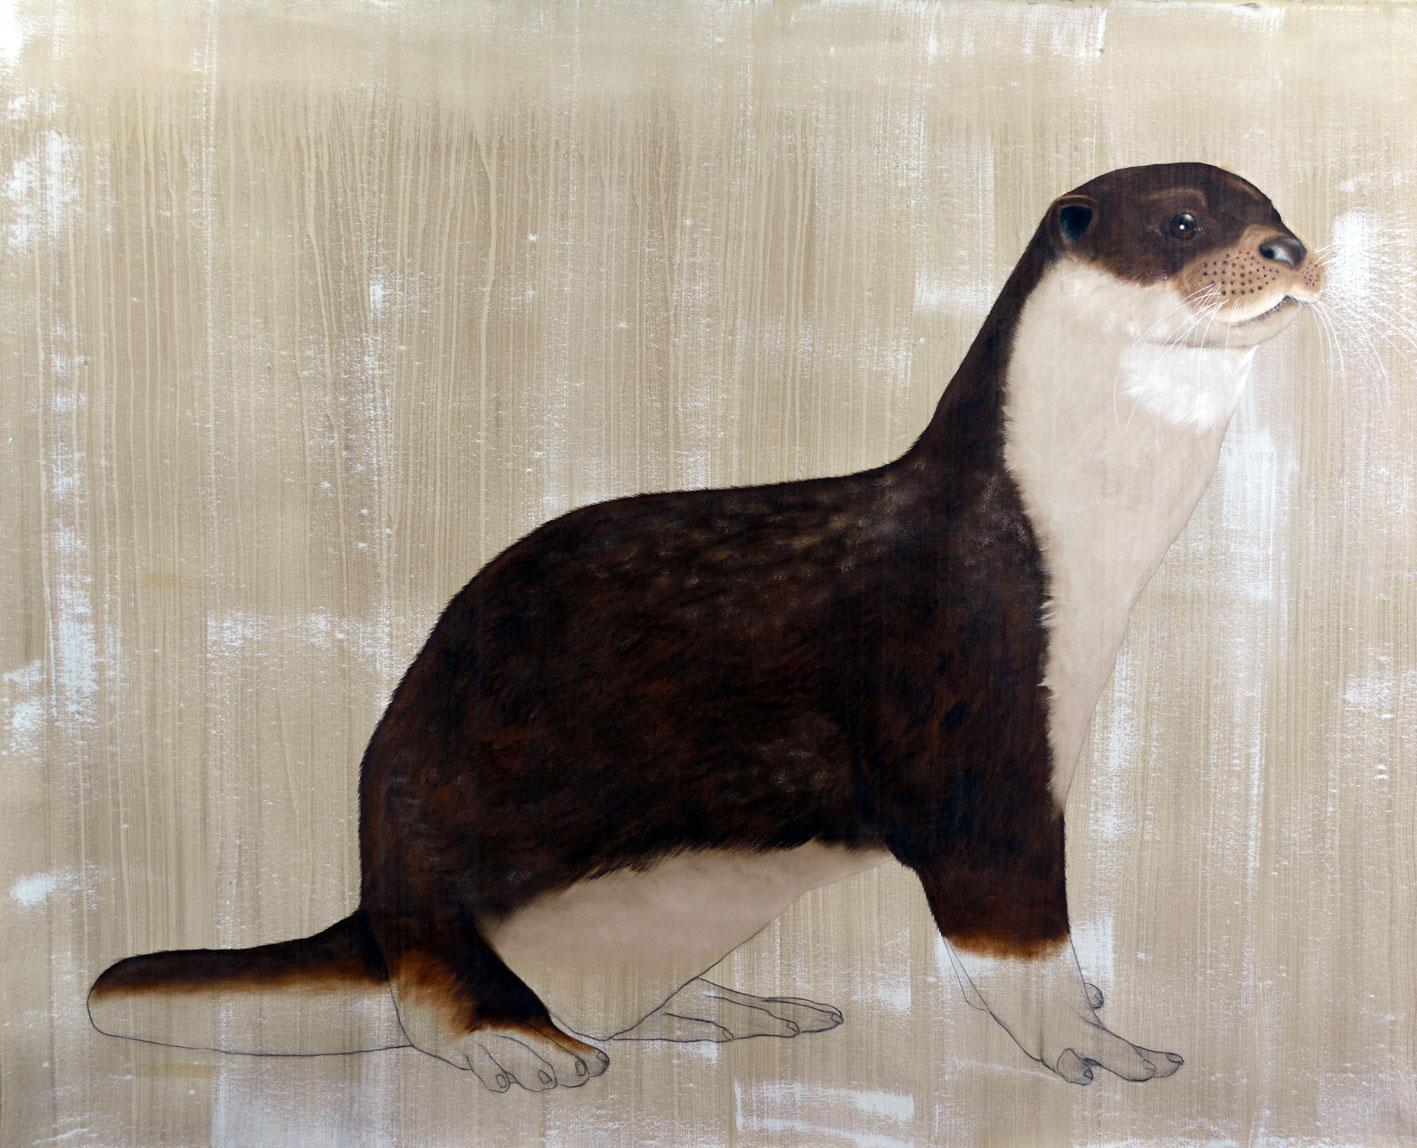 Lutra Lutra otter-lutra Thierry Bisch painter animals painting art decoration hotel design interior luxury nature biodiversity conservation